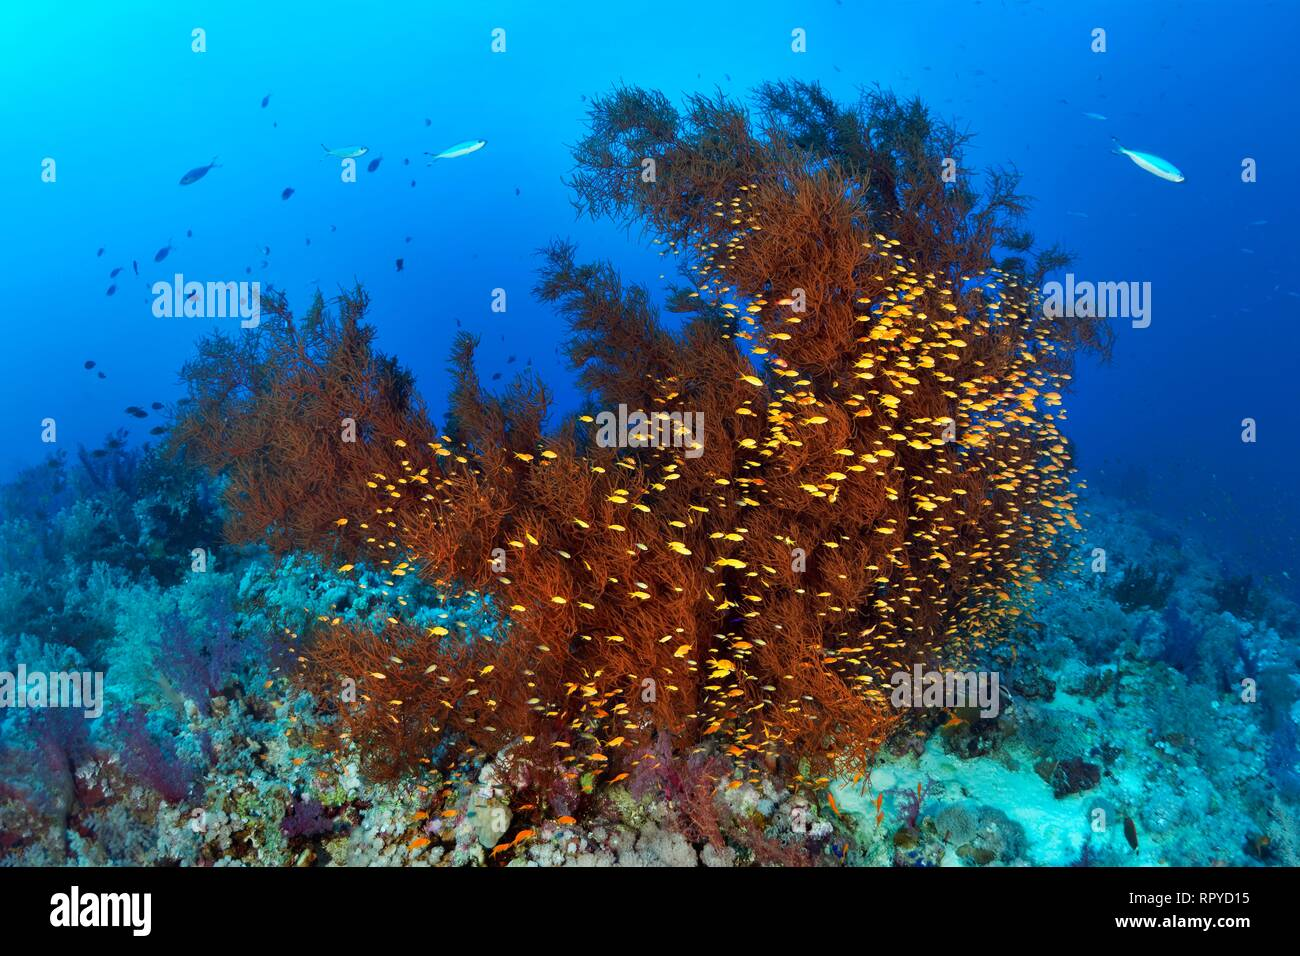 Coral Reef with Black Coral (Antipathes dichotoma) and Swarm Anthias (Anthiinae), Red Sea, Egypt - Stock Image